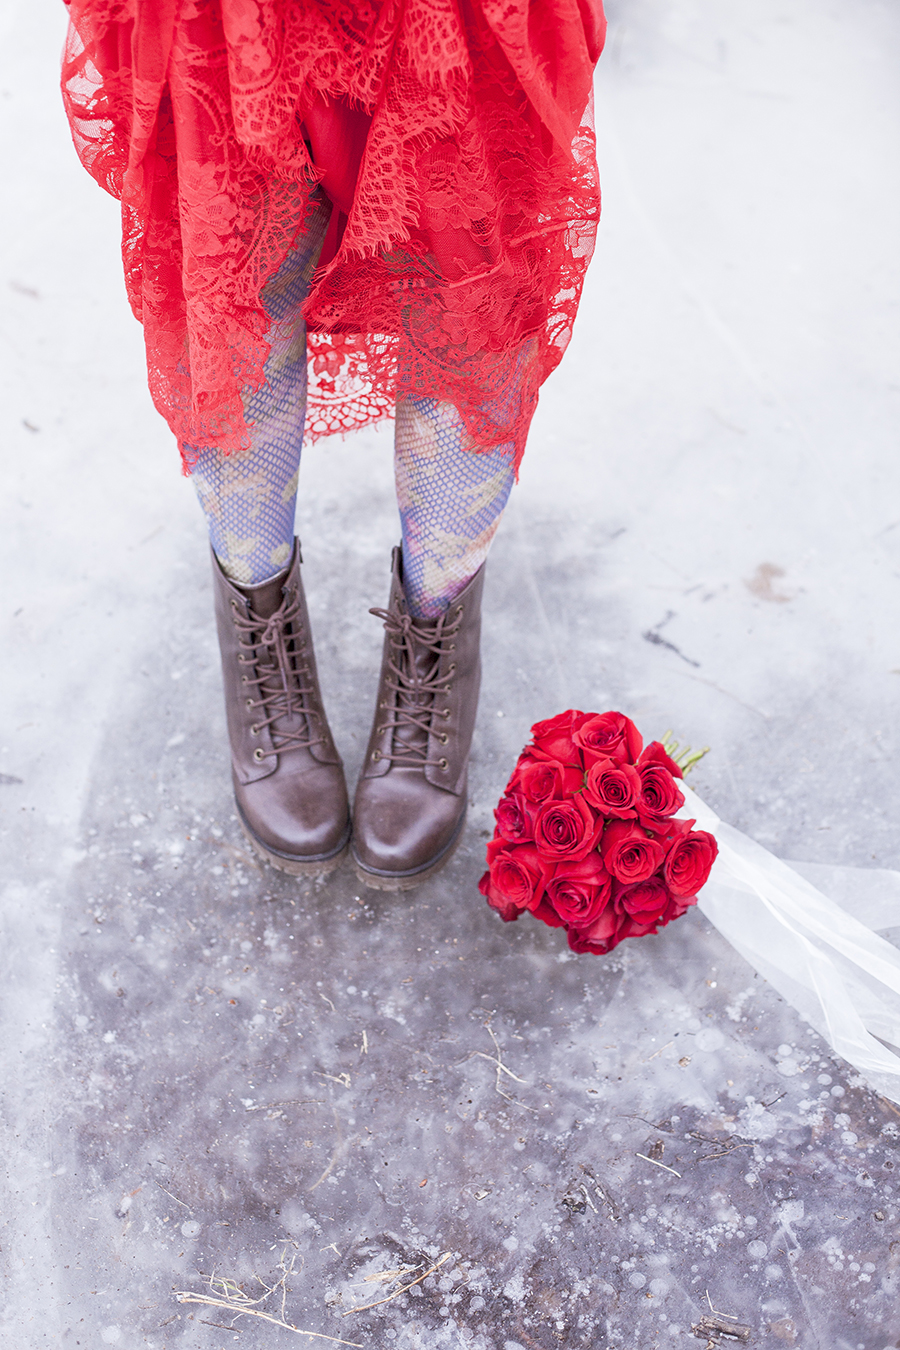 Banggood red lace mermaid dress, Urban Outfitters floral lace tights, Steve Madden boots, wedding bouquet of red roses.